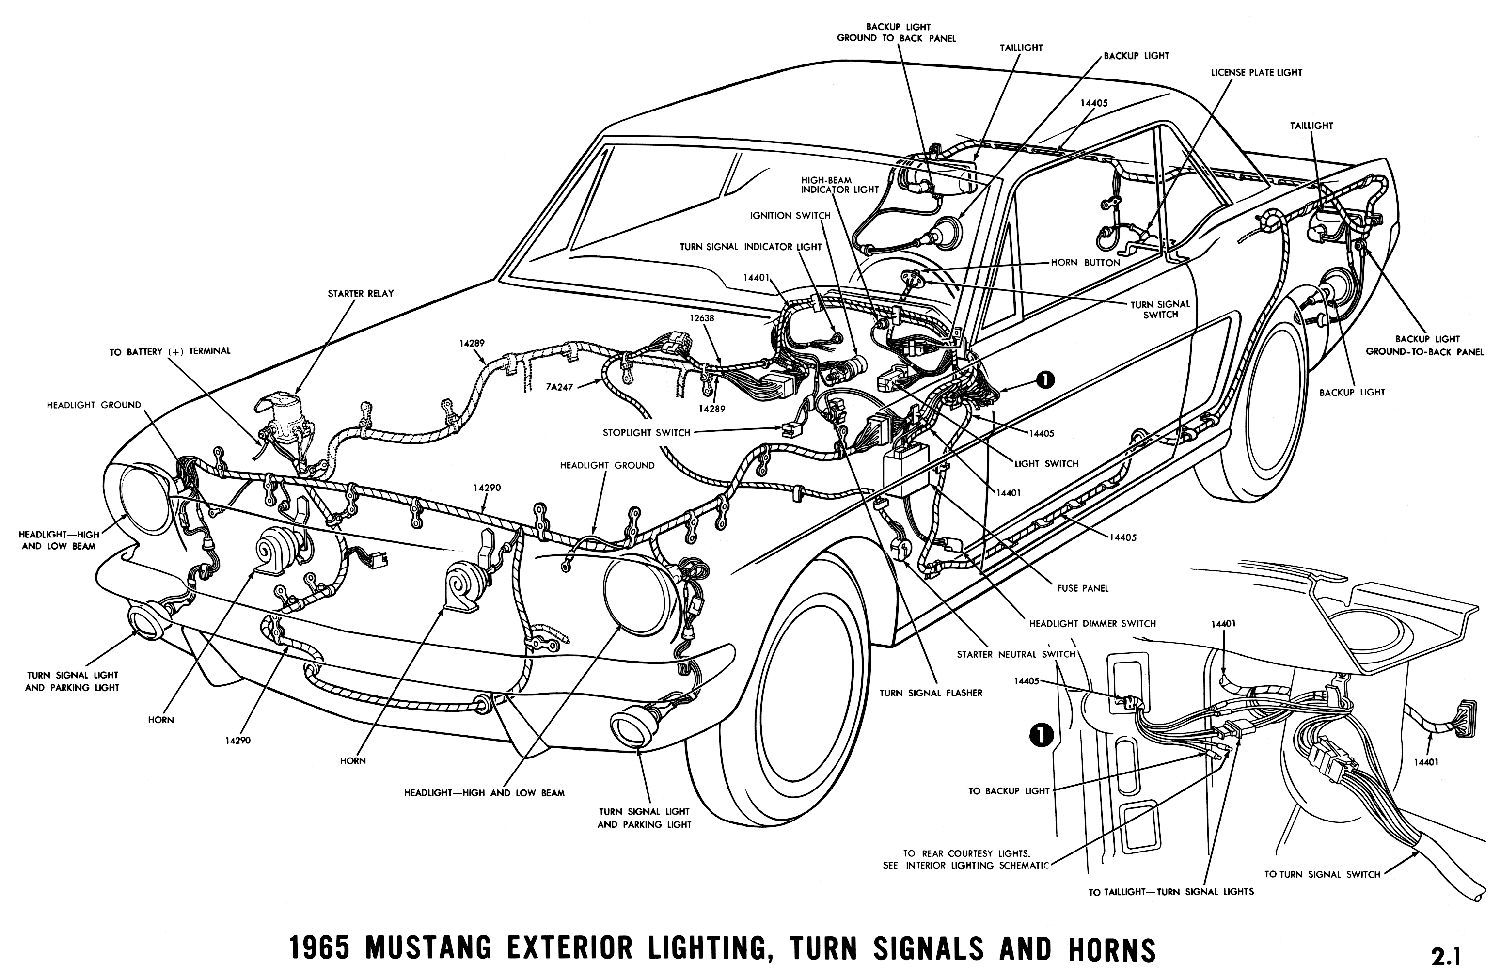 713949a72f53535feeda434261e0da35 pin by frederic sonck on wiring pinterest ford mustang, ford 1965 mustang instrument cluster wiring diagram at n-0.co